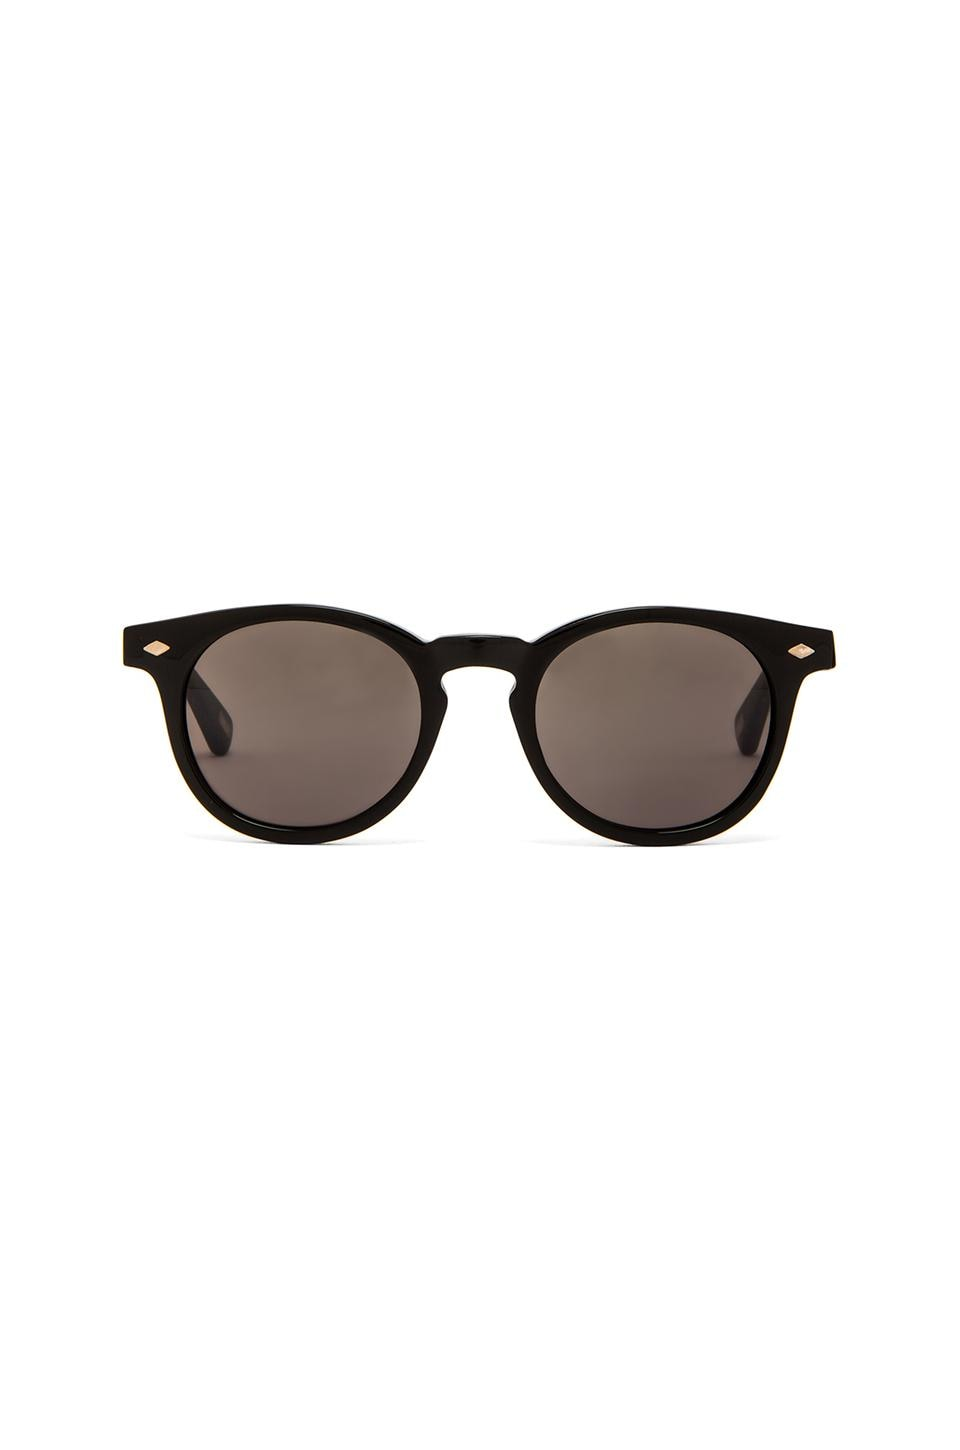 Marc by Marc Jacobs Soft Cat Eye Sunglasses in Black